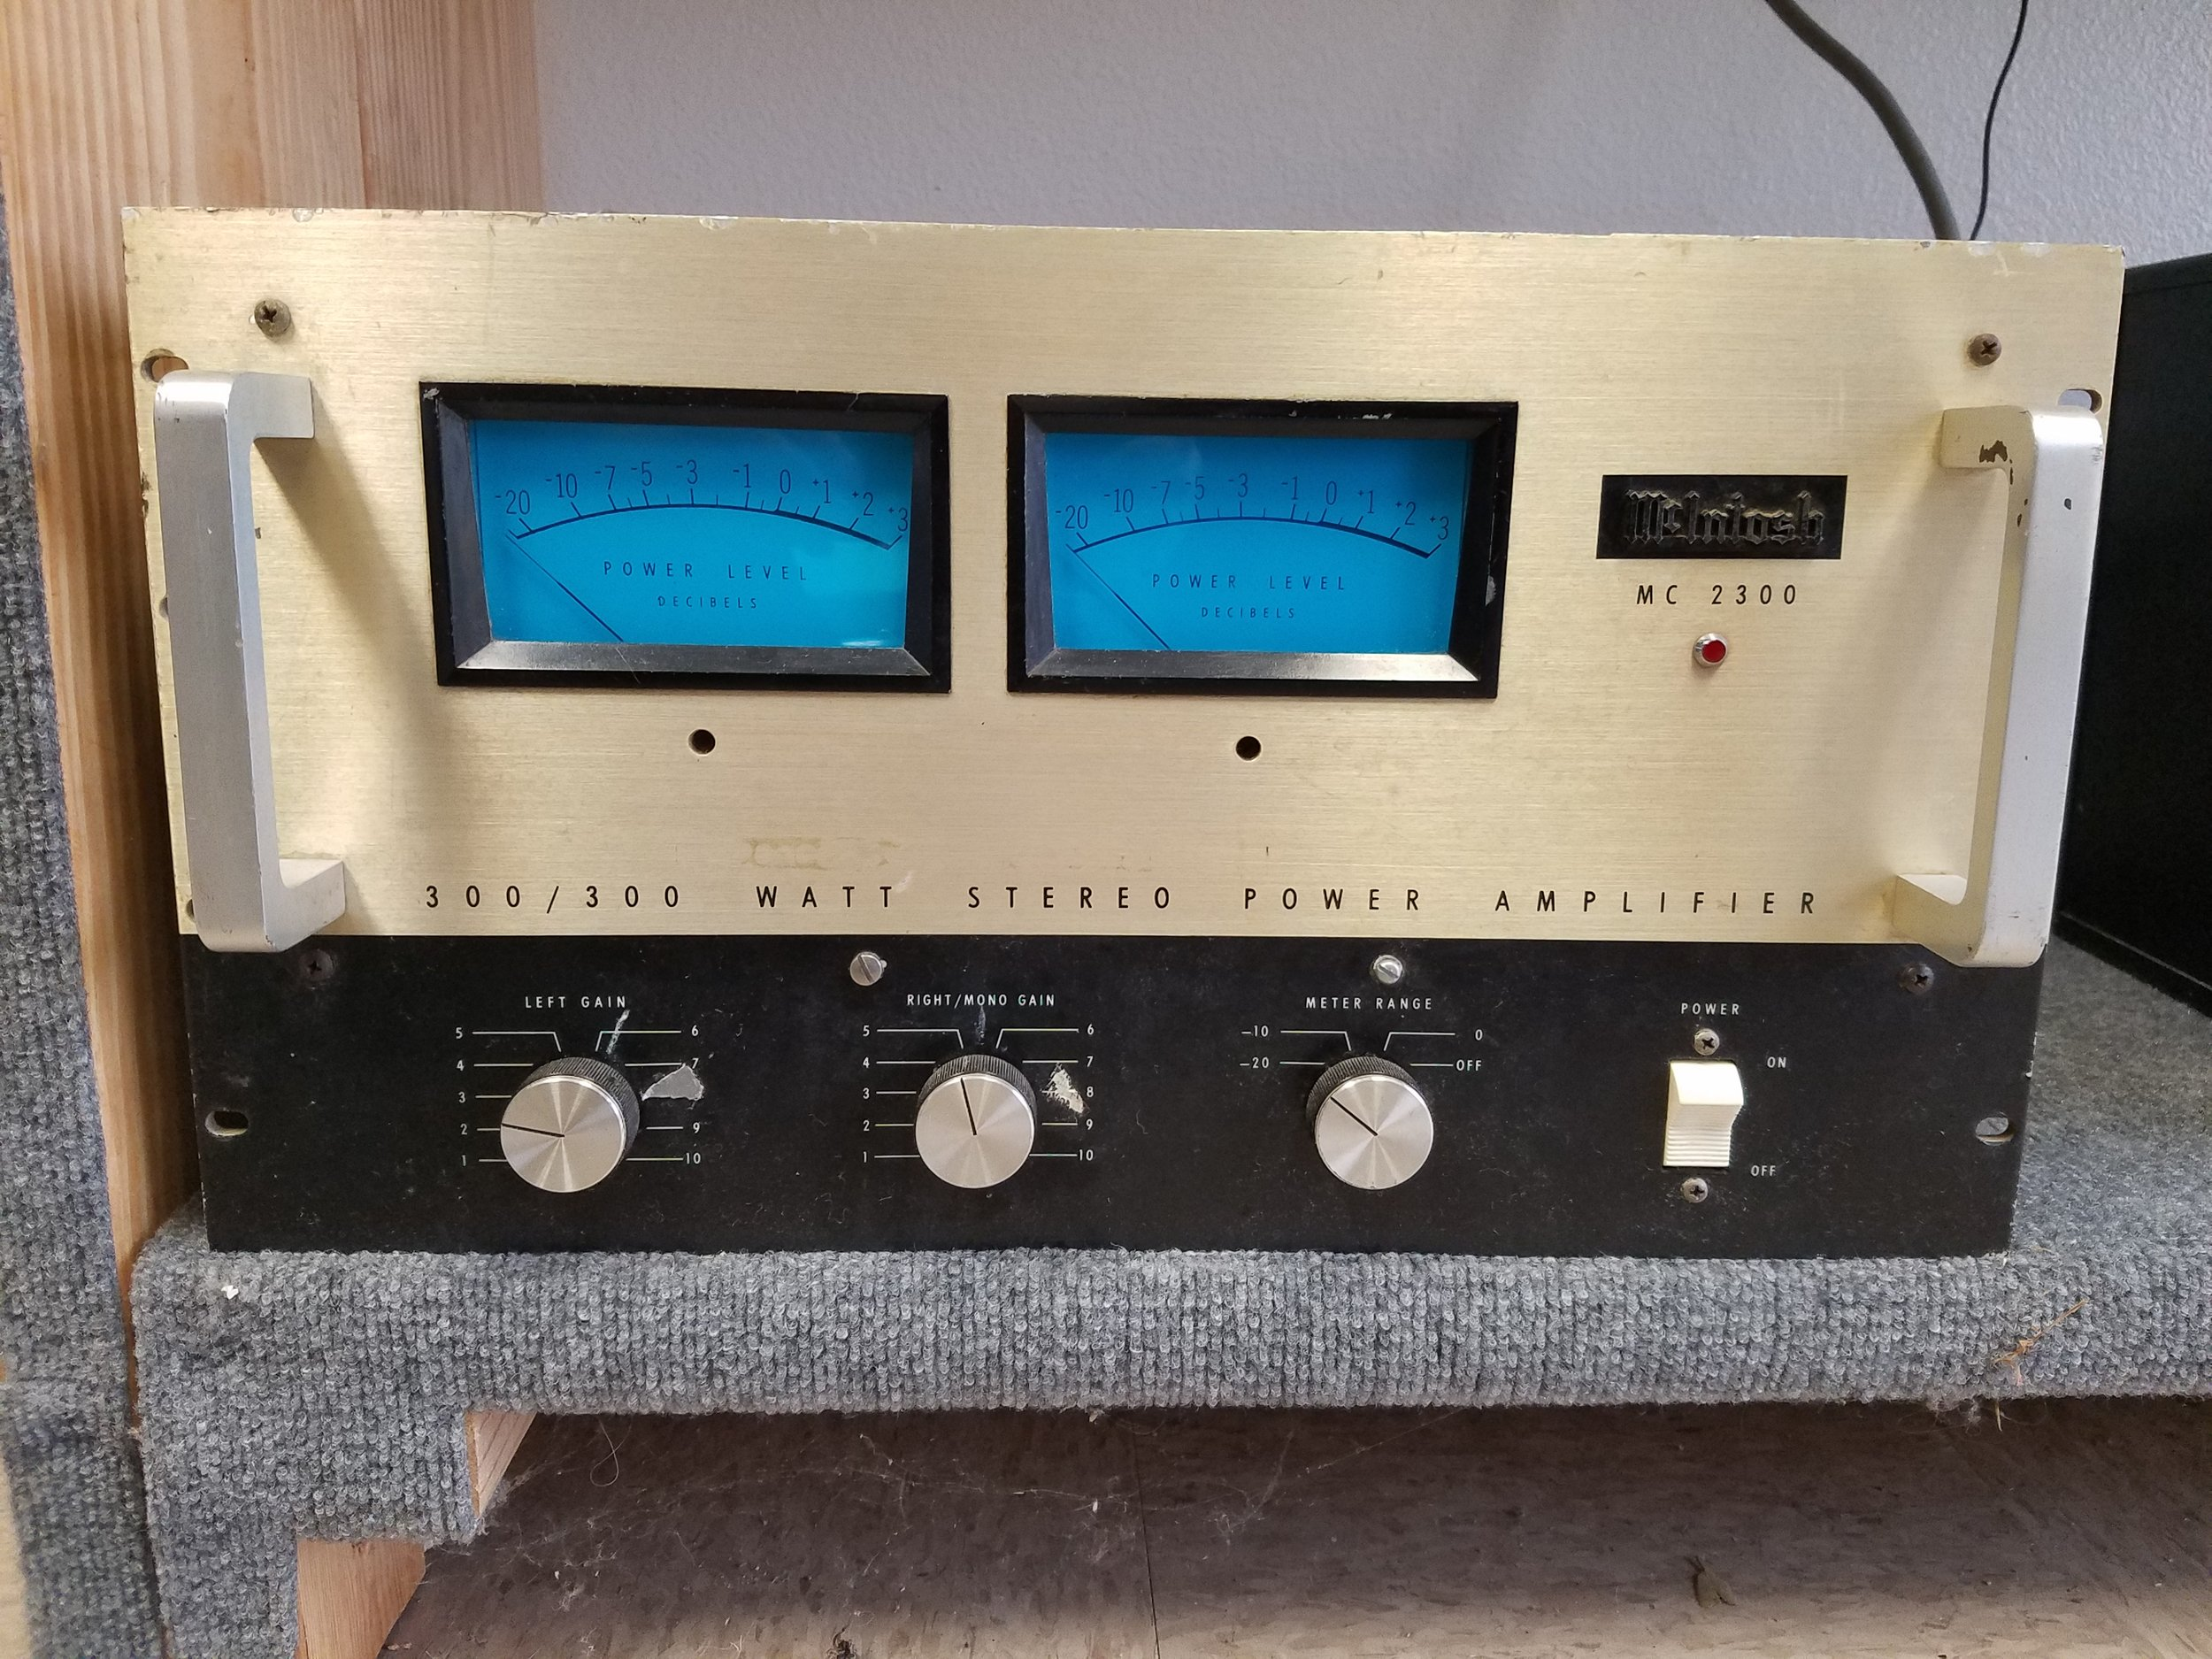 McIntosh amp - MC-2300 - 3850.00  Used  SPECIFICATIONS  Power output: 300 watts per channel into 8Ω (stereo), 600W into 8Ω (mono) Frequency response: 20Hz to 20kHz Total harmonic distortion: 0.25% Damping factor: 14 Input sensitivity: 0.5V Signal to noise ratio: 90dB Speaker load impedance: 0.5Ω to 16Ω Semiconductors: 46 x transistors, 22 x diodes Dimensions: 483 x 267 x 430mm Weight: 58kg Finish: anodized gold and black with black enamel chassis